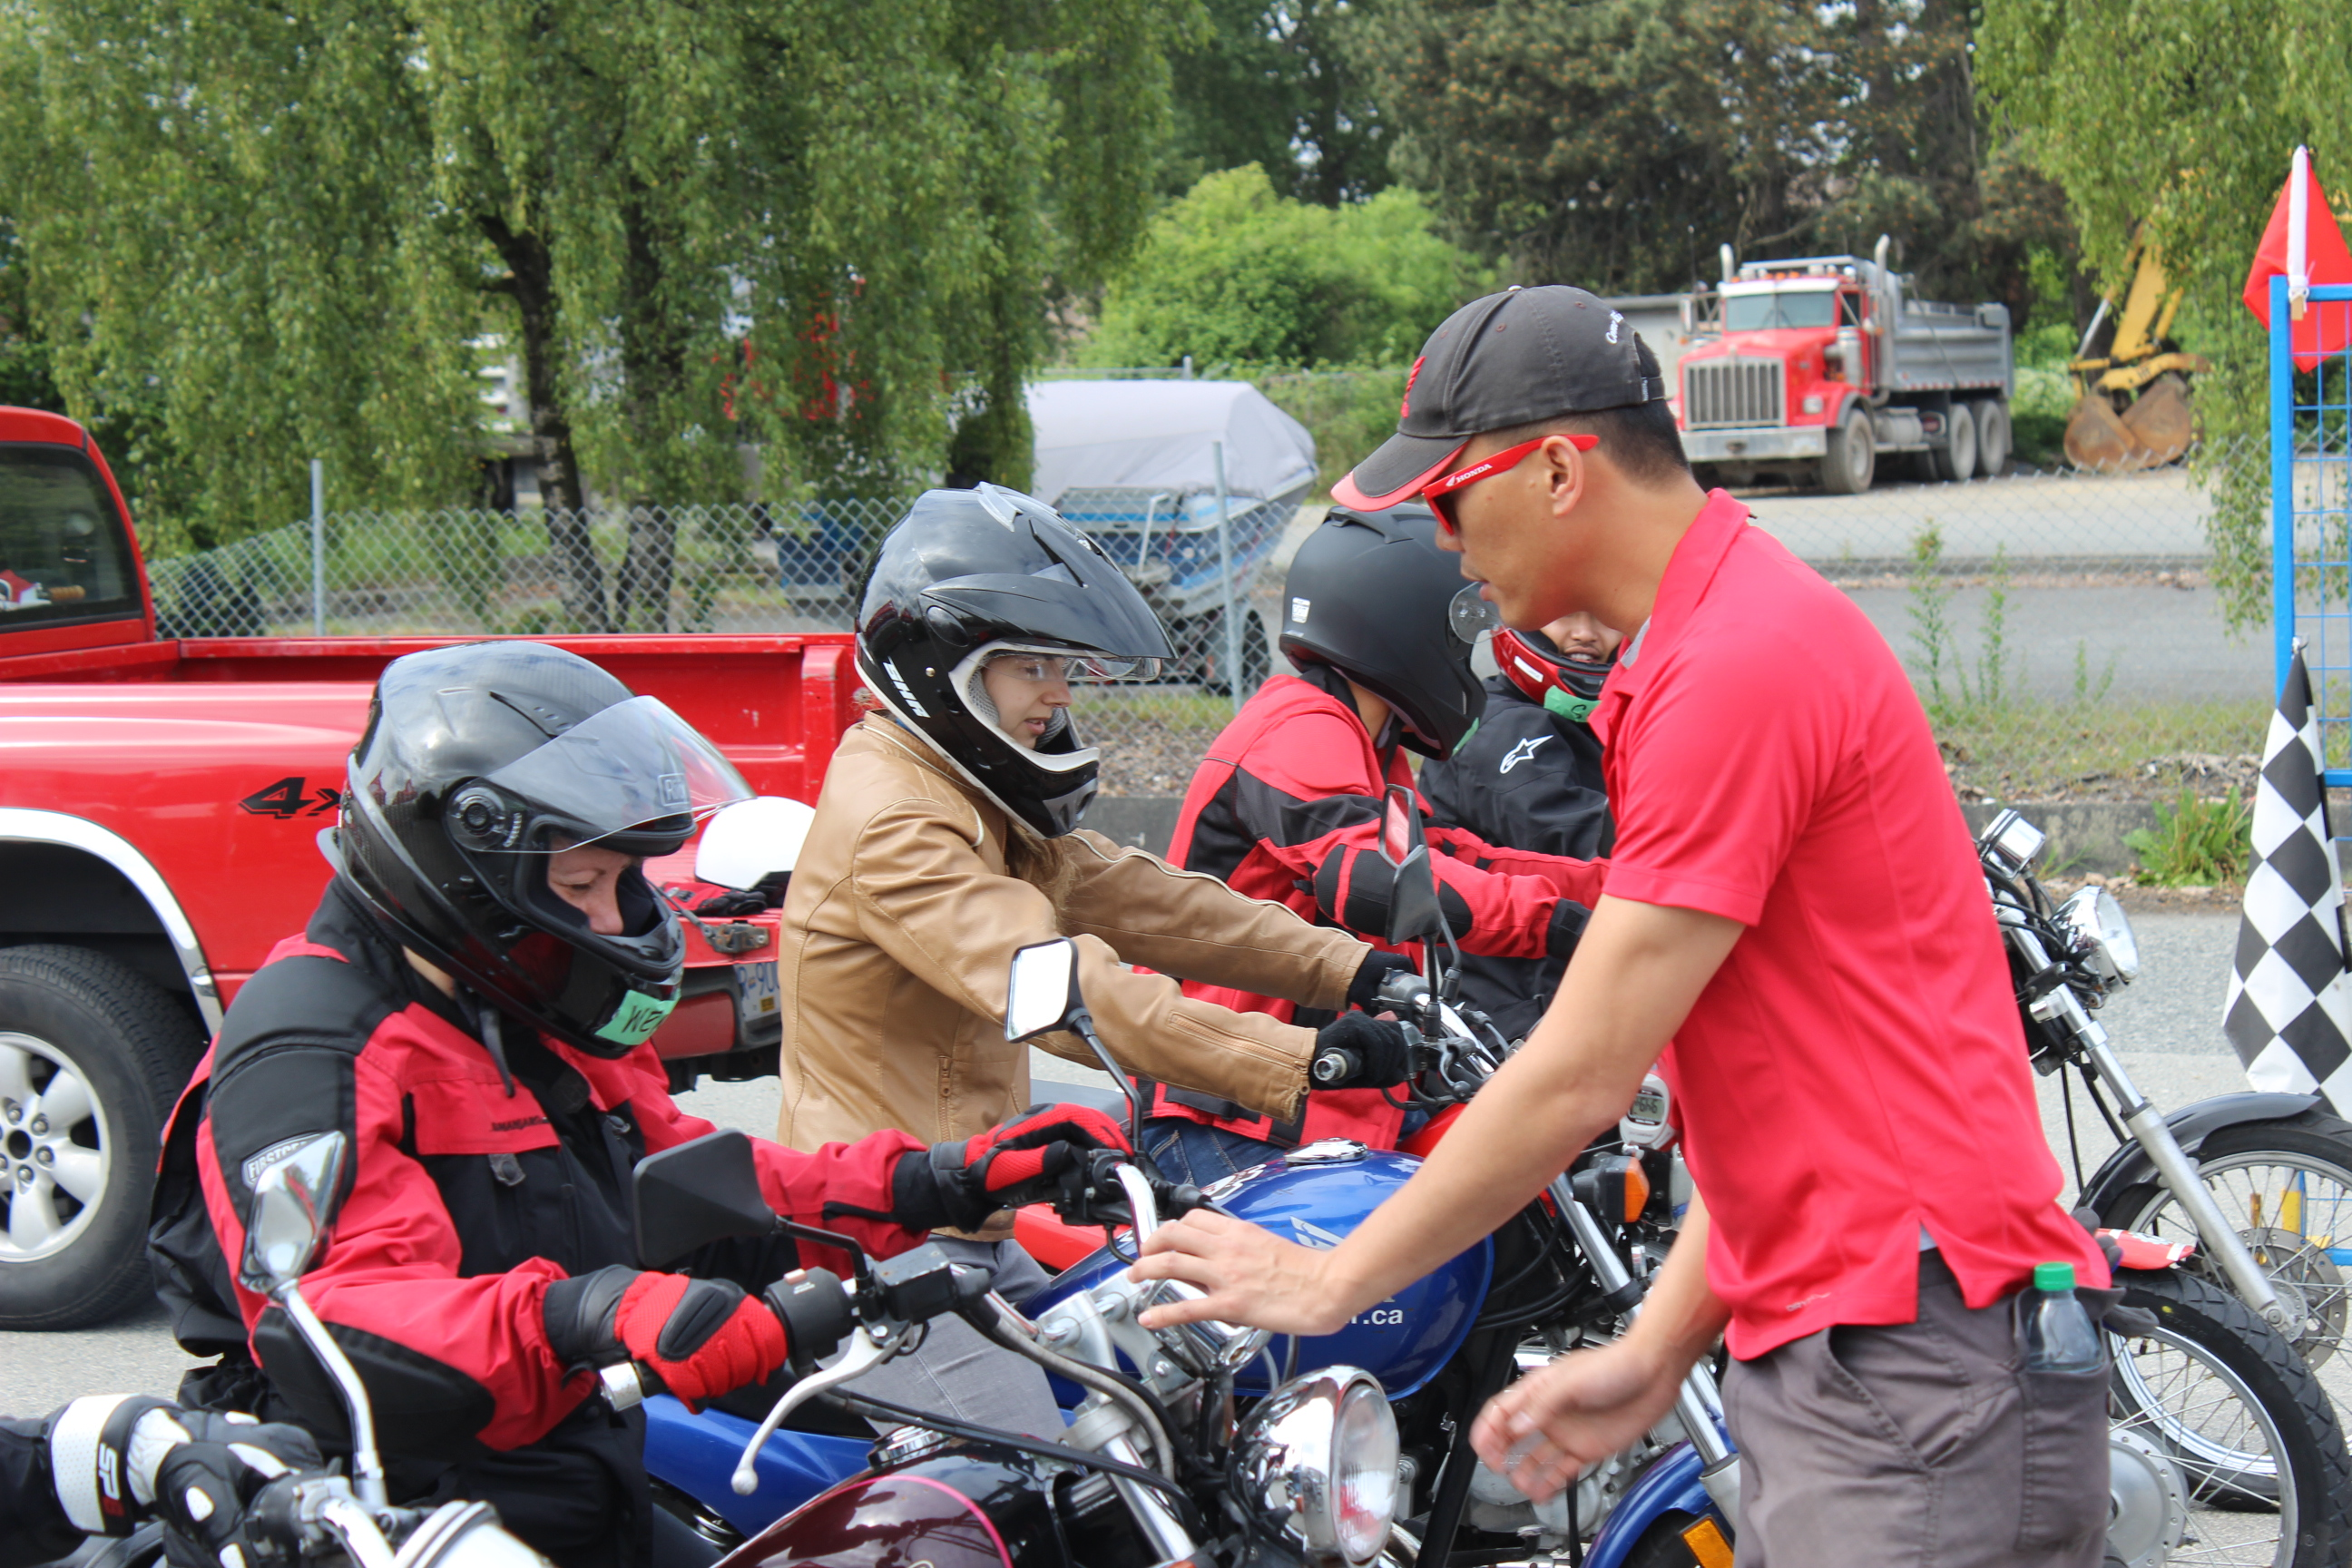 Motorcycle gloves victoria bc - 1st Gear Motorcycle School Training 2551 Vauxhall Pl Richmond Bc Get Your Bc Motorcycle License At Our School We Are Located Close To Vancouver